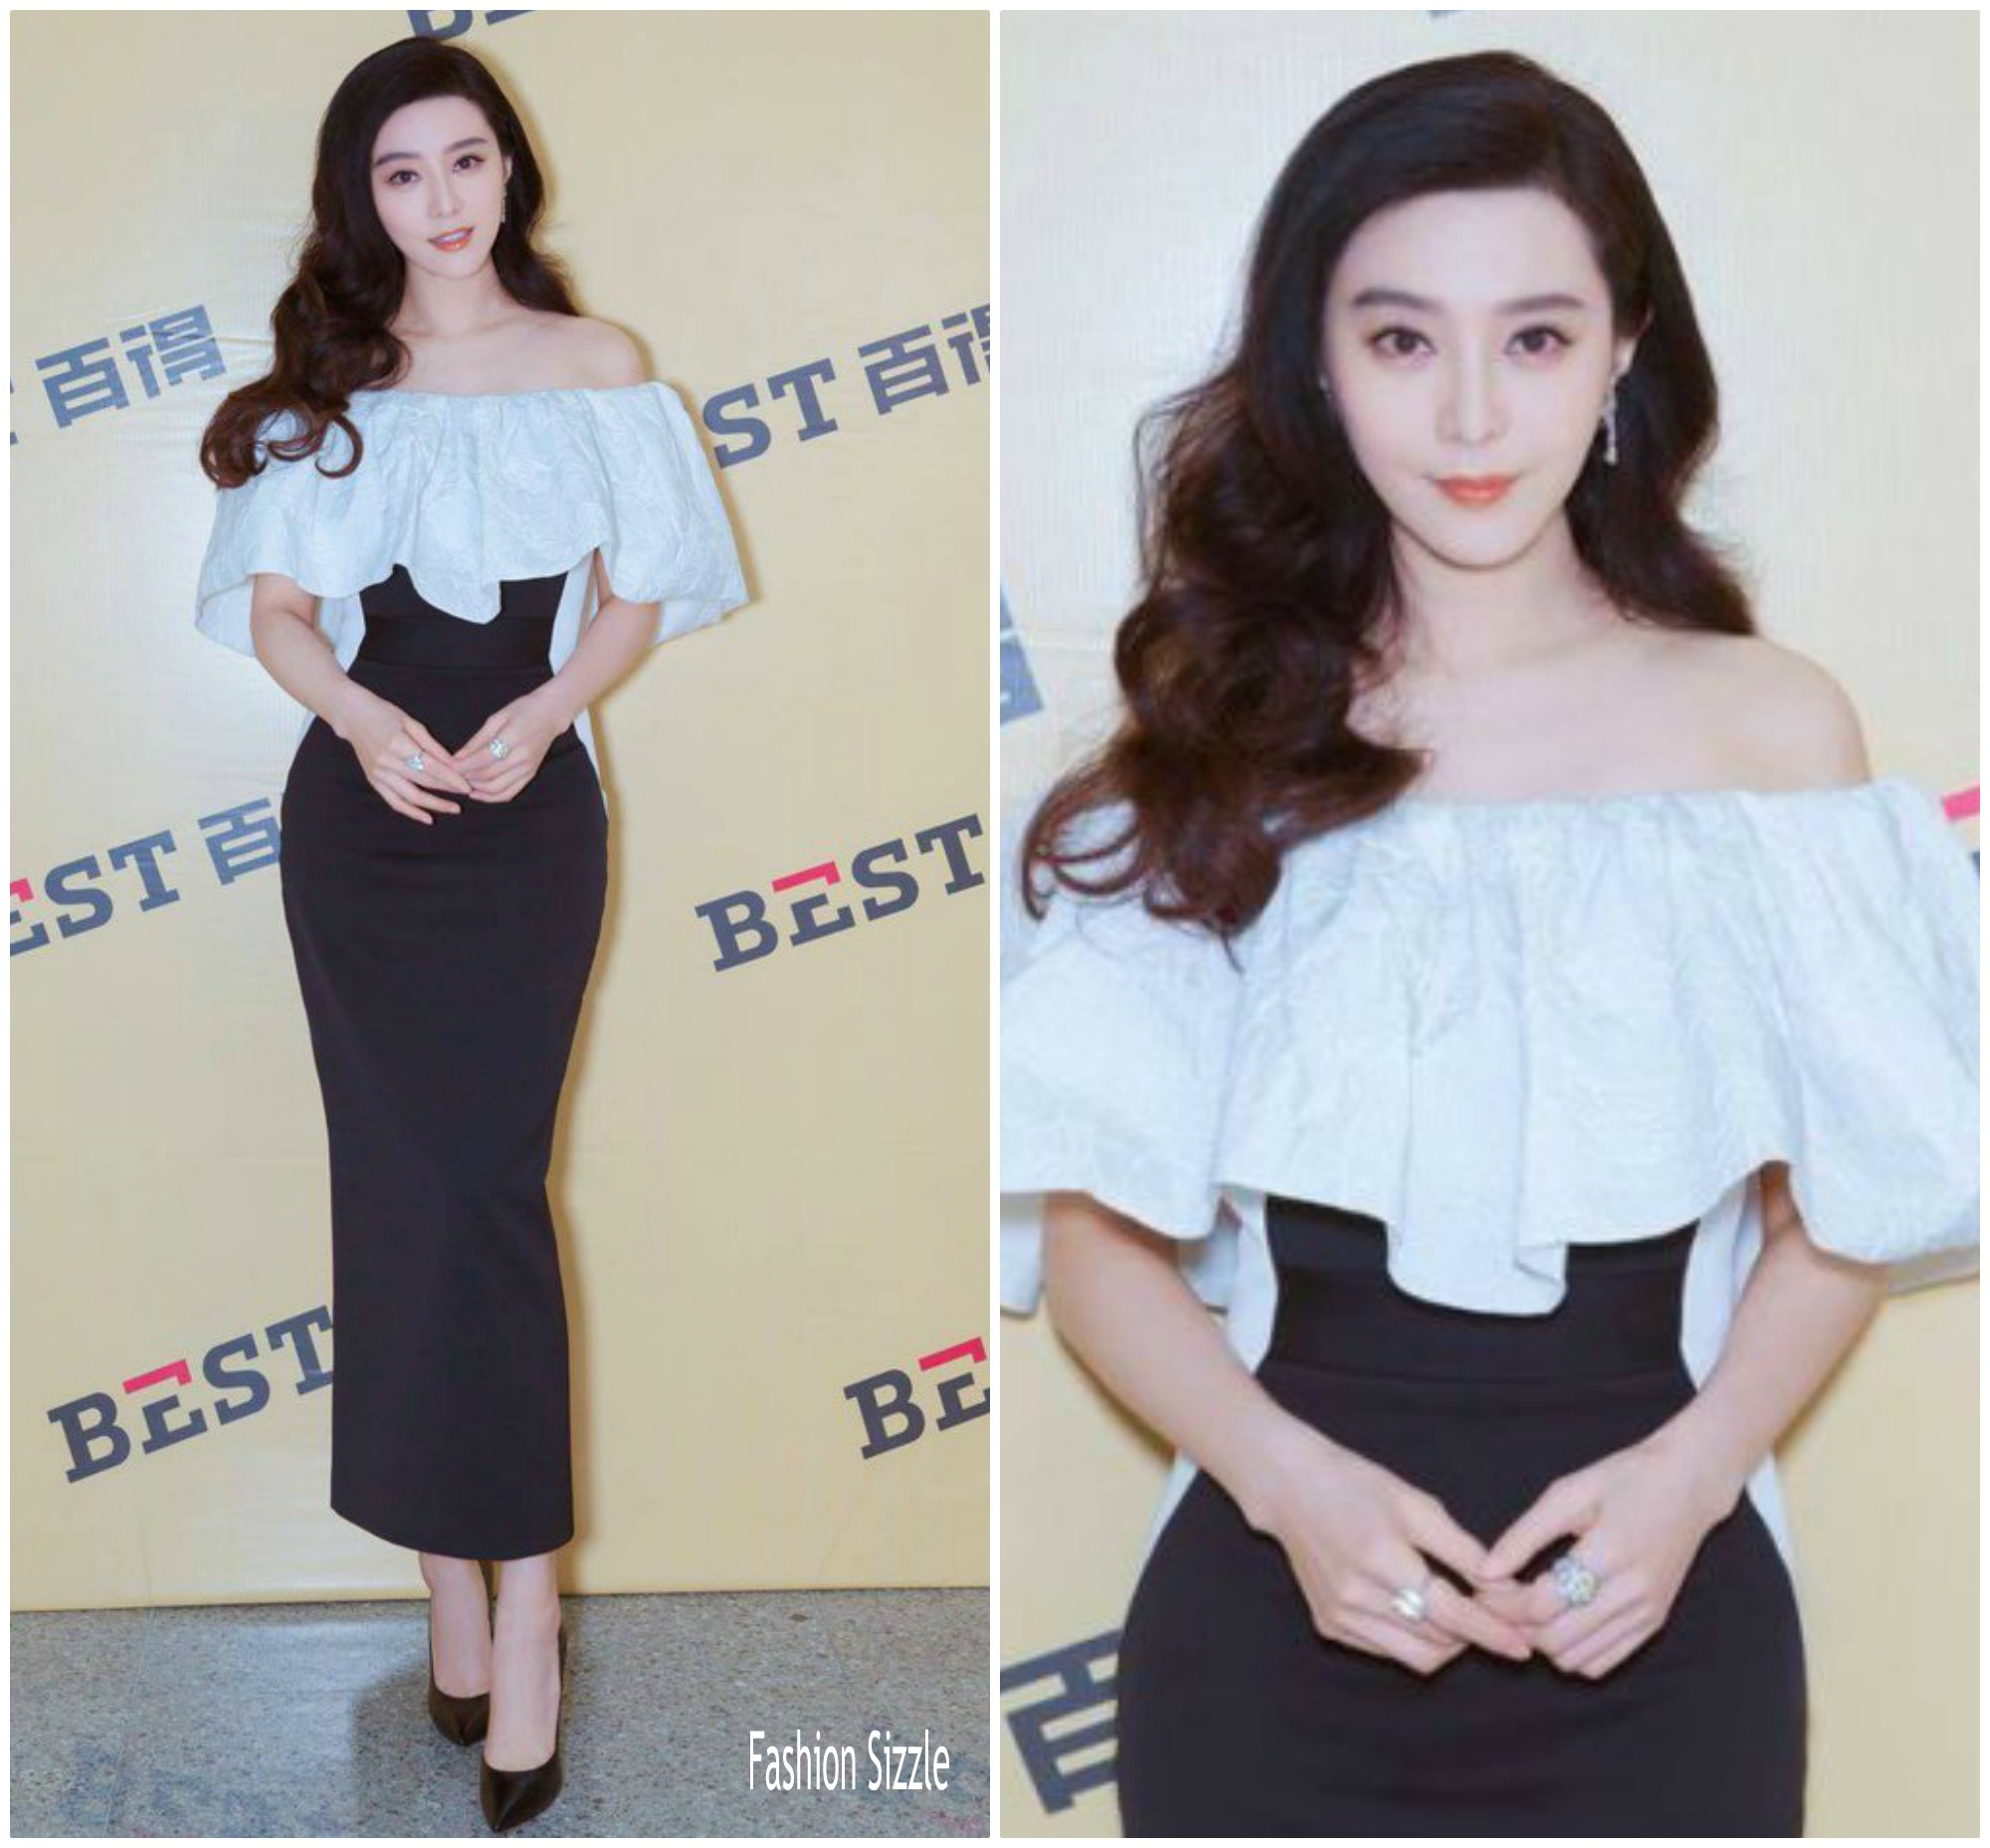 fan-bingbing-in-chicco-mao-chinabest-press-conference